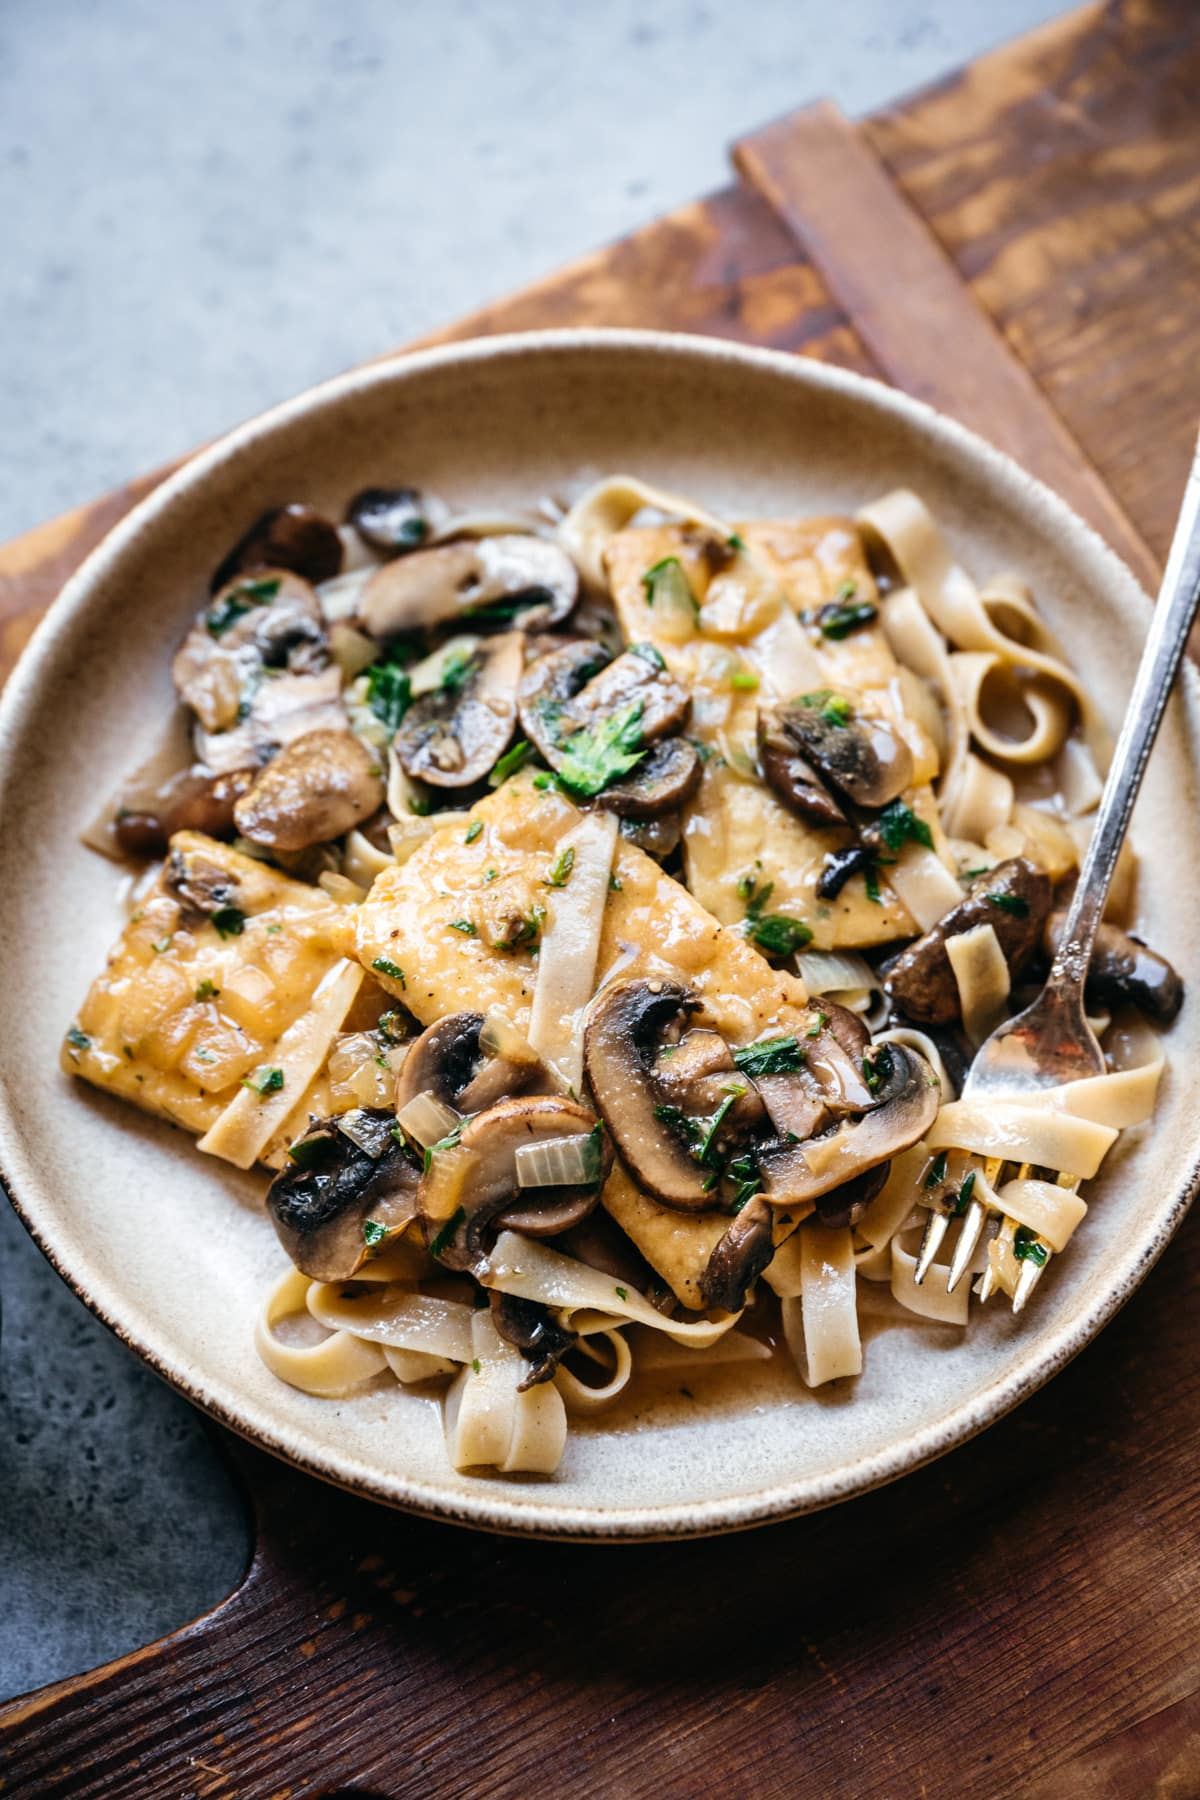 side view of tofu marsala in a bowl with pasta.